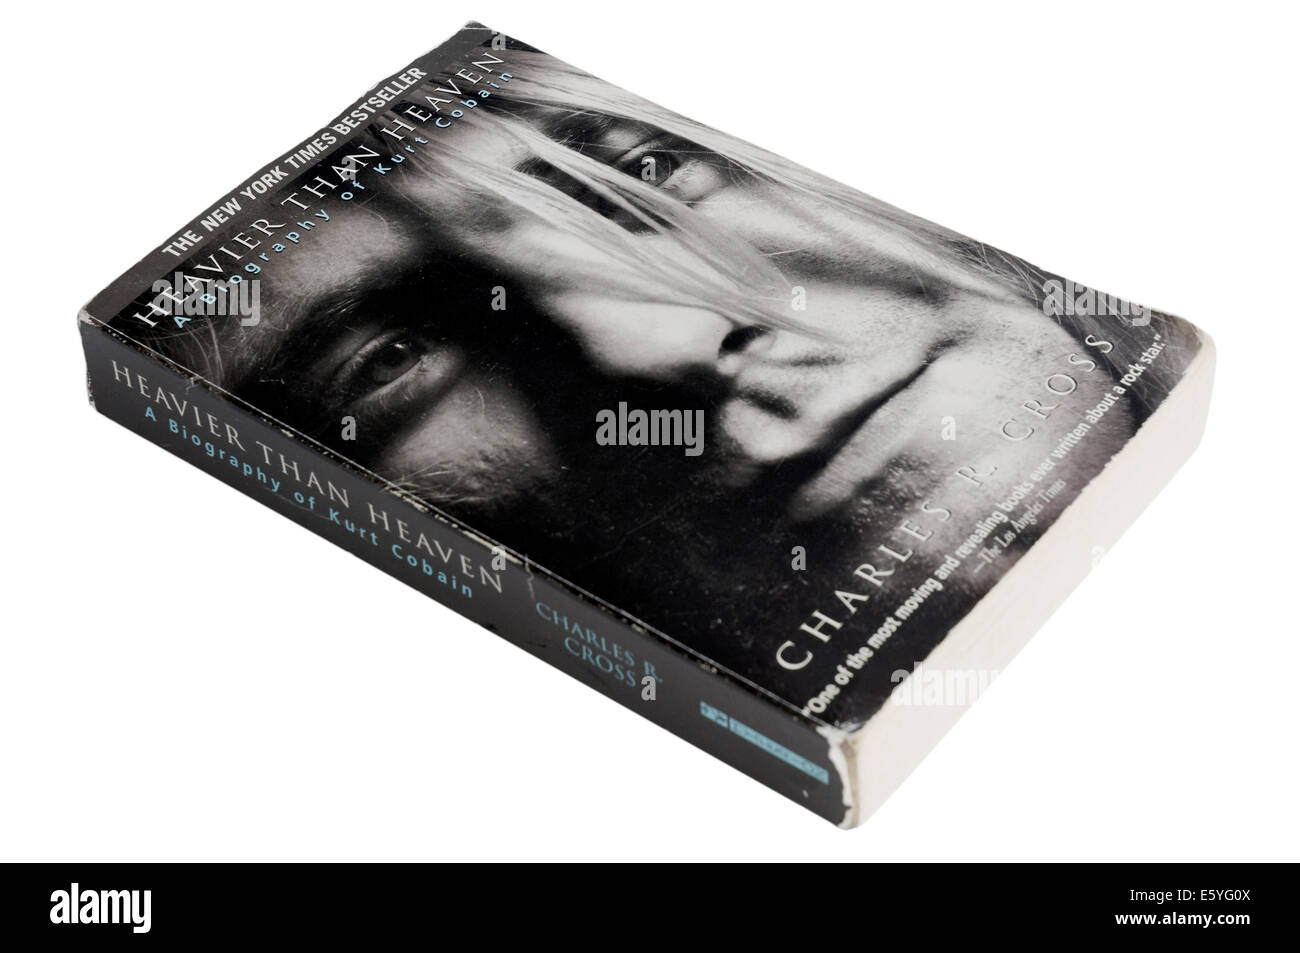 Heavier Than Heaven, a biography of Kurt Cobain by Charles Cross - Stock Image